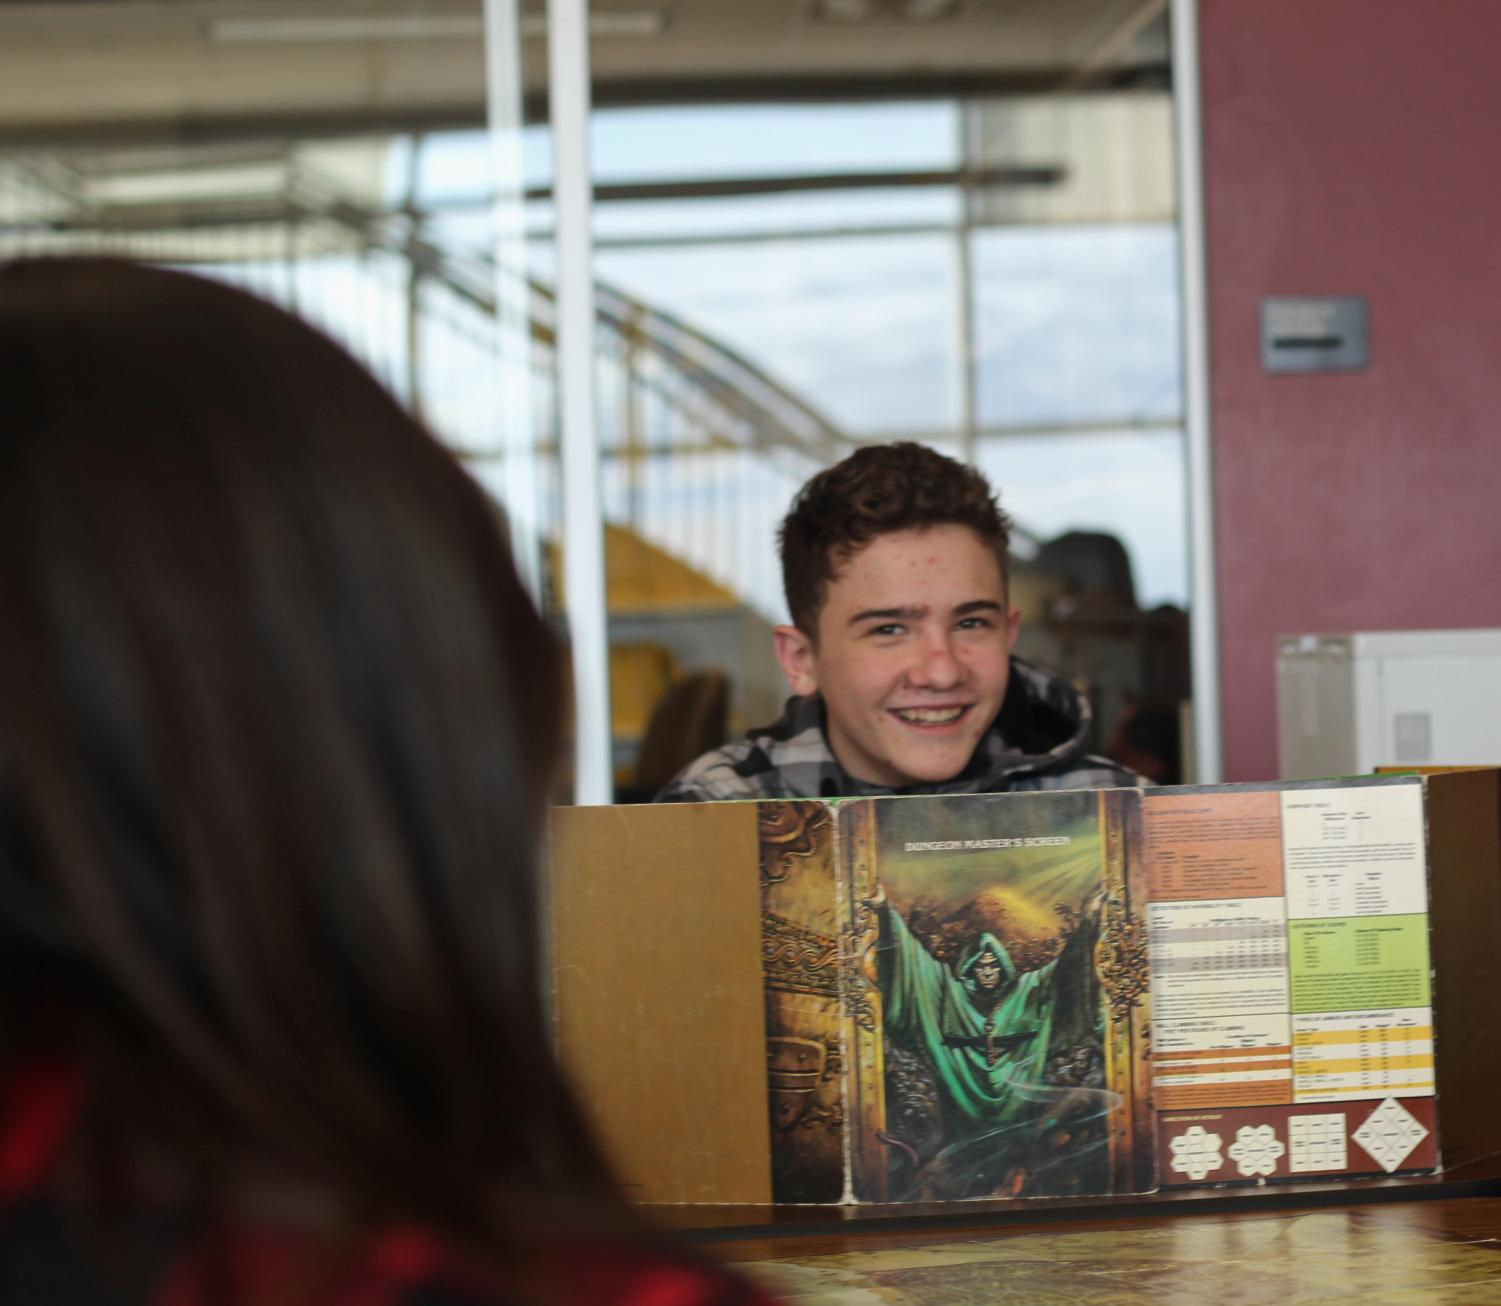 Matthew Gray plays Dungeons and Dragons with his friends.